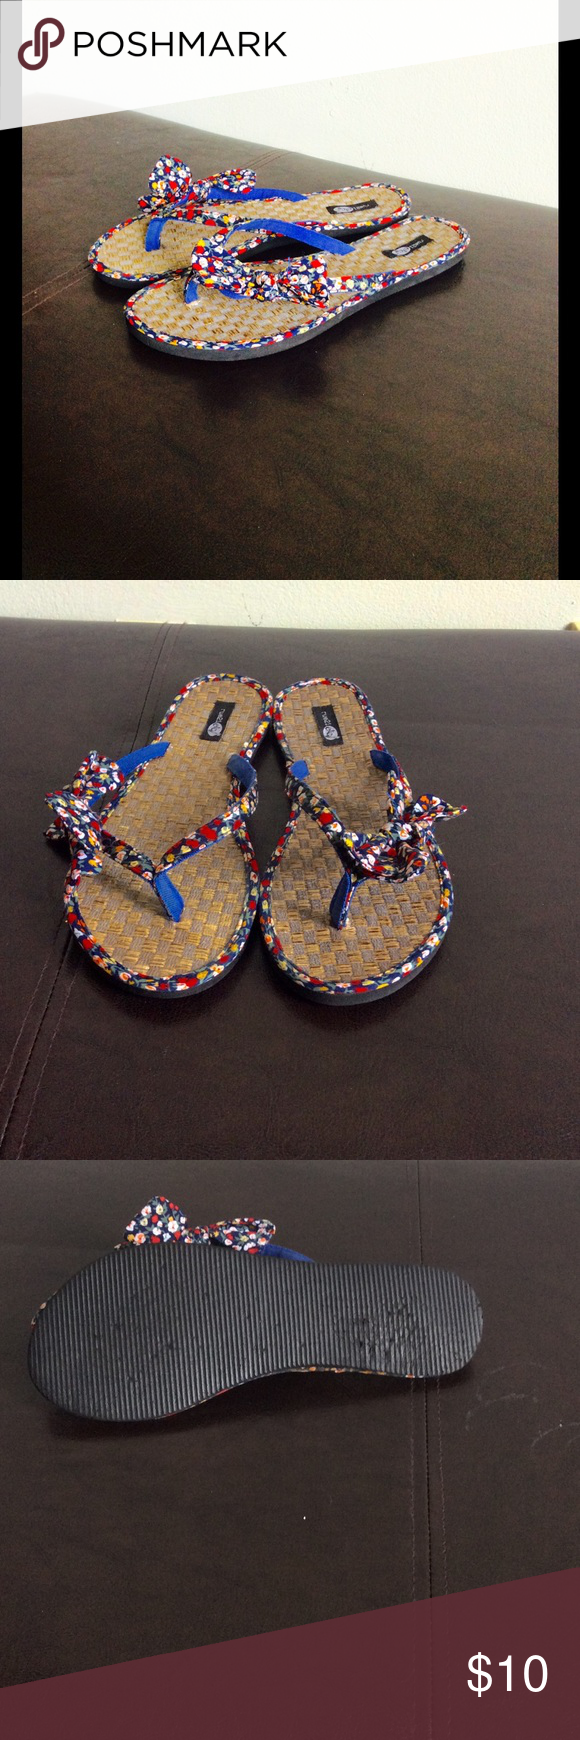 Floral Flip Flops Only worn a few times; the bottoms are a little scuffed up. Other than that, they're in perfect condition! Rue 21 Shoes Sandals